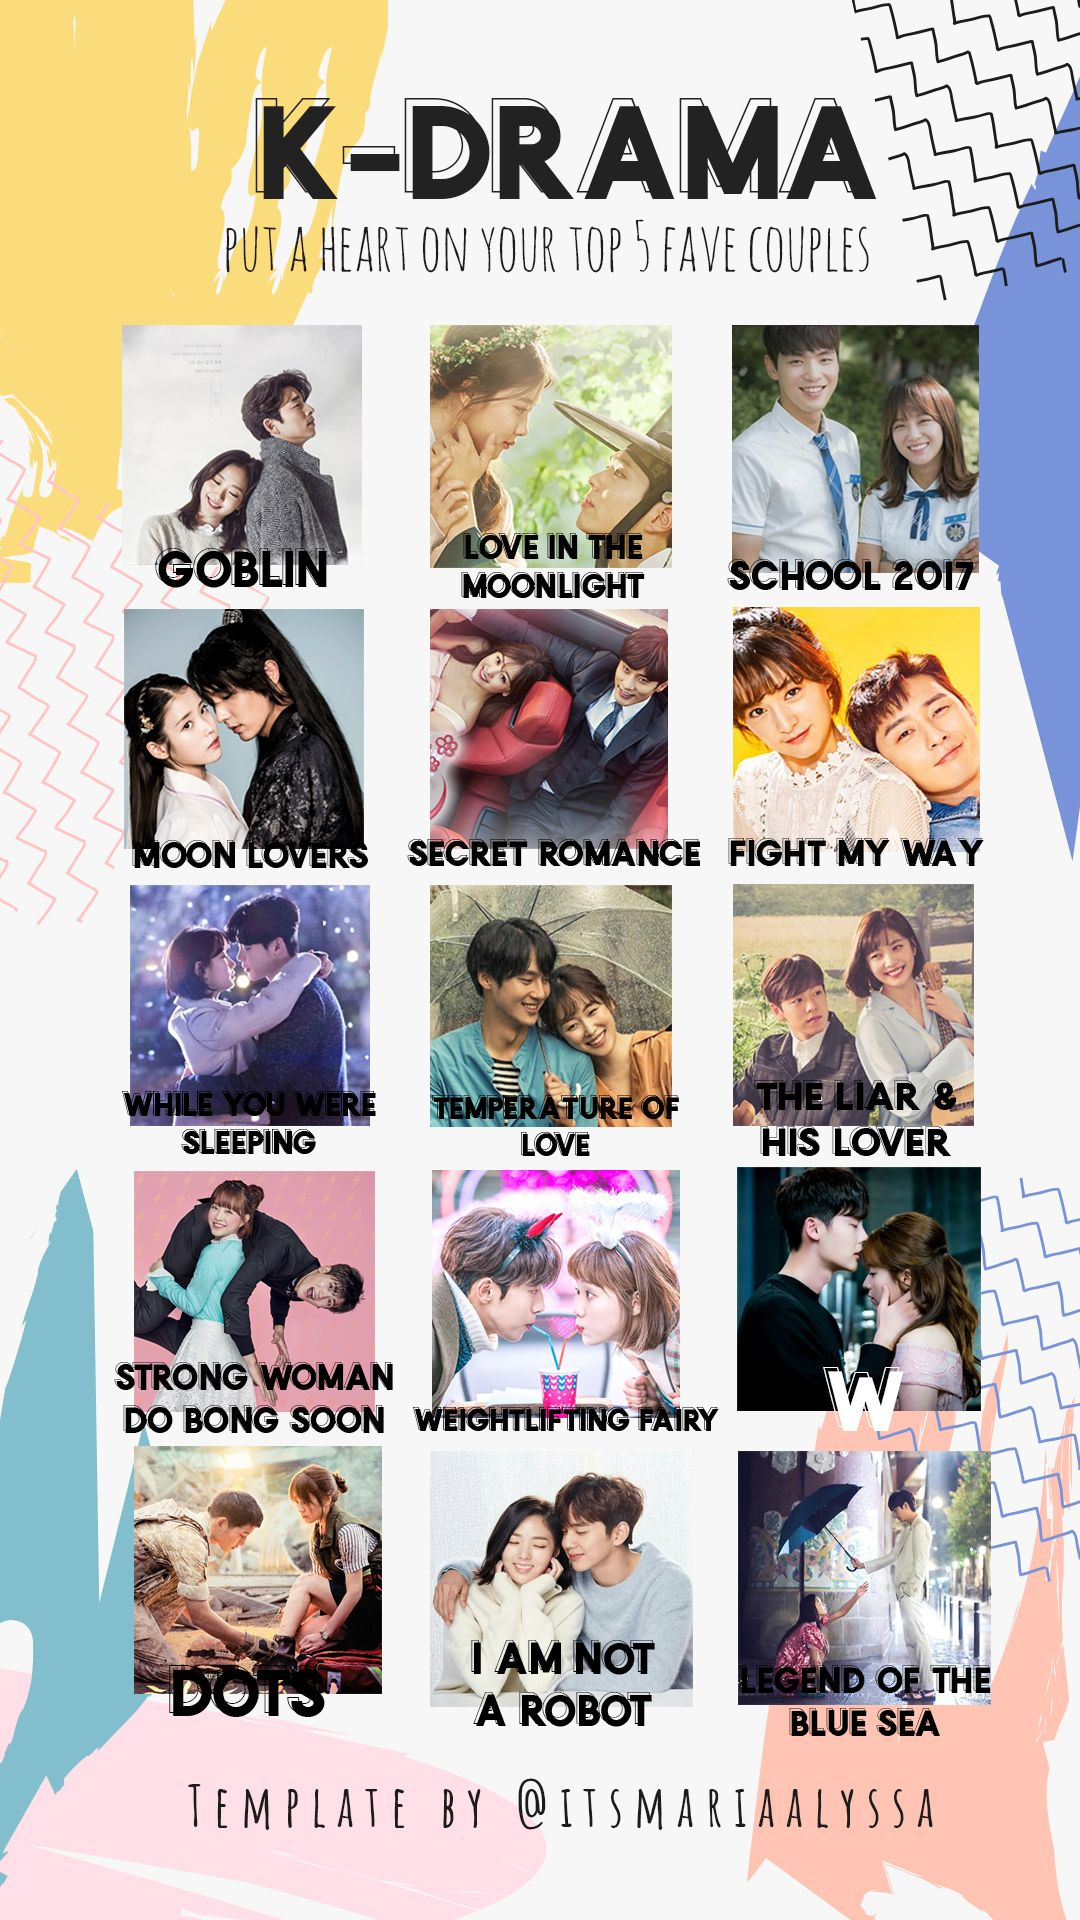 Latest Funny Couple  K-Drama Couples - Free Instagram Stories Template by @itsmariaalyssa 3